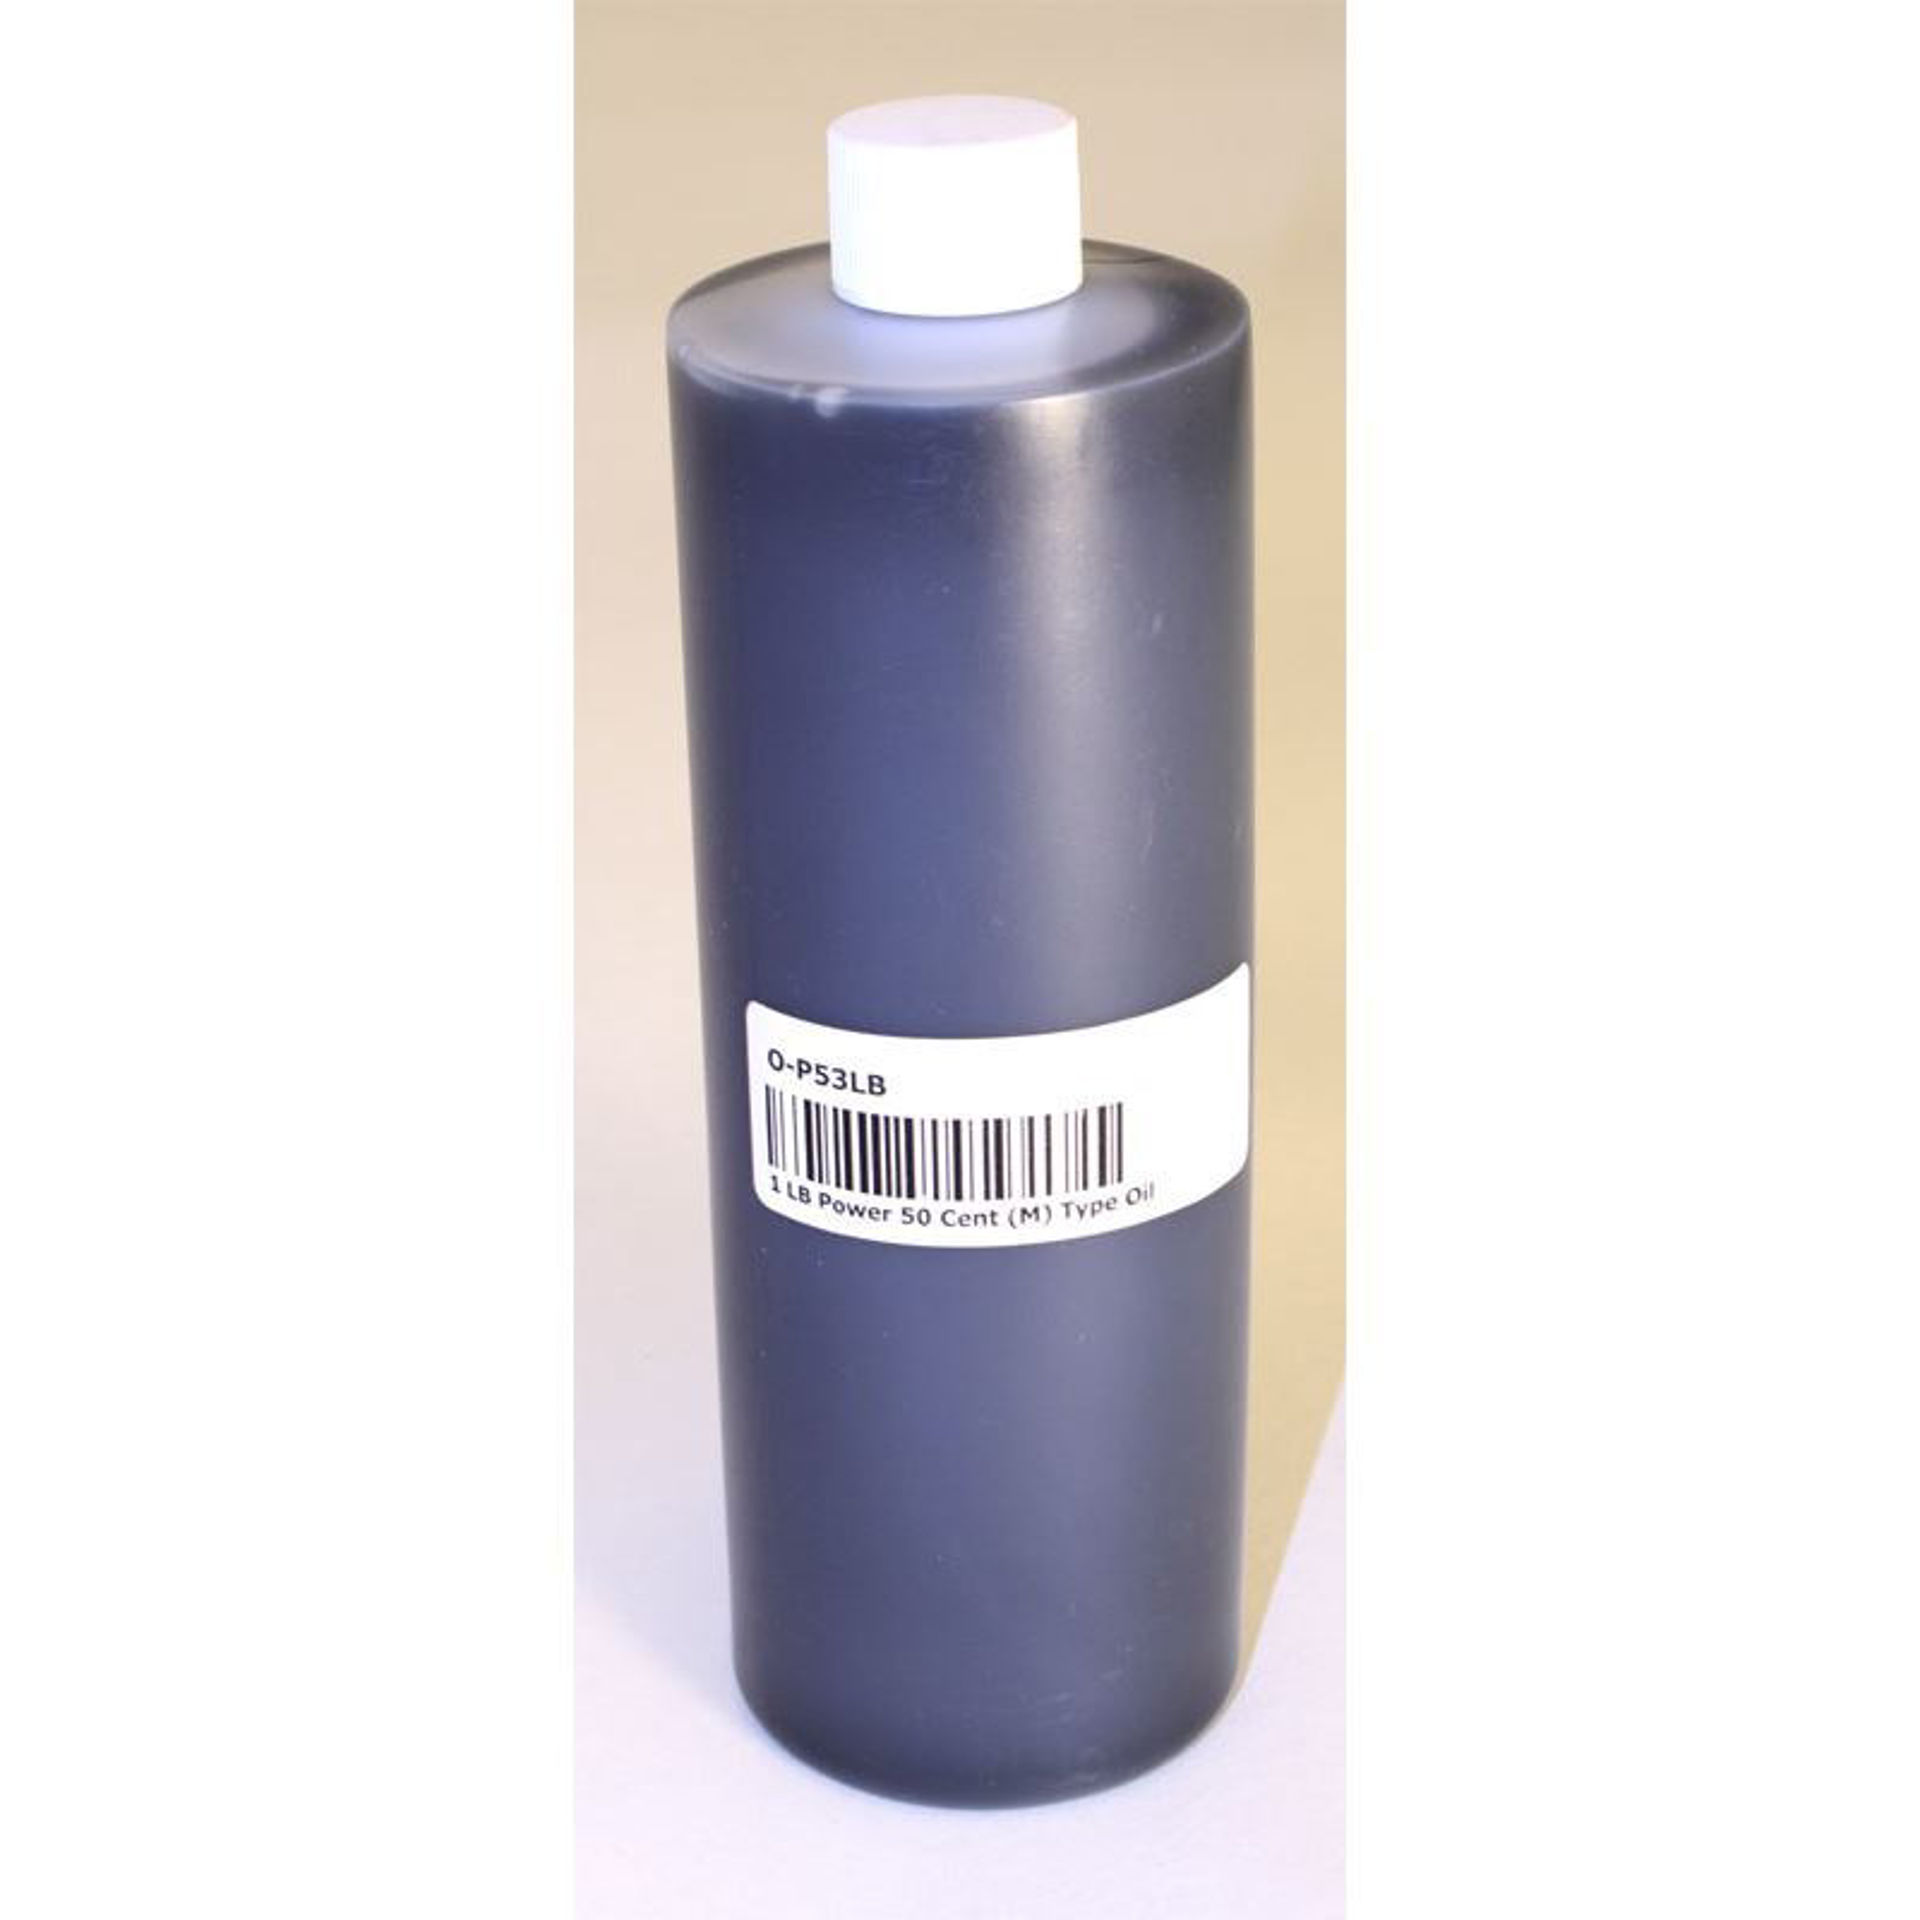 Picture of 1 Lb Power: 50 Cent (M) Type Oil